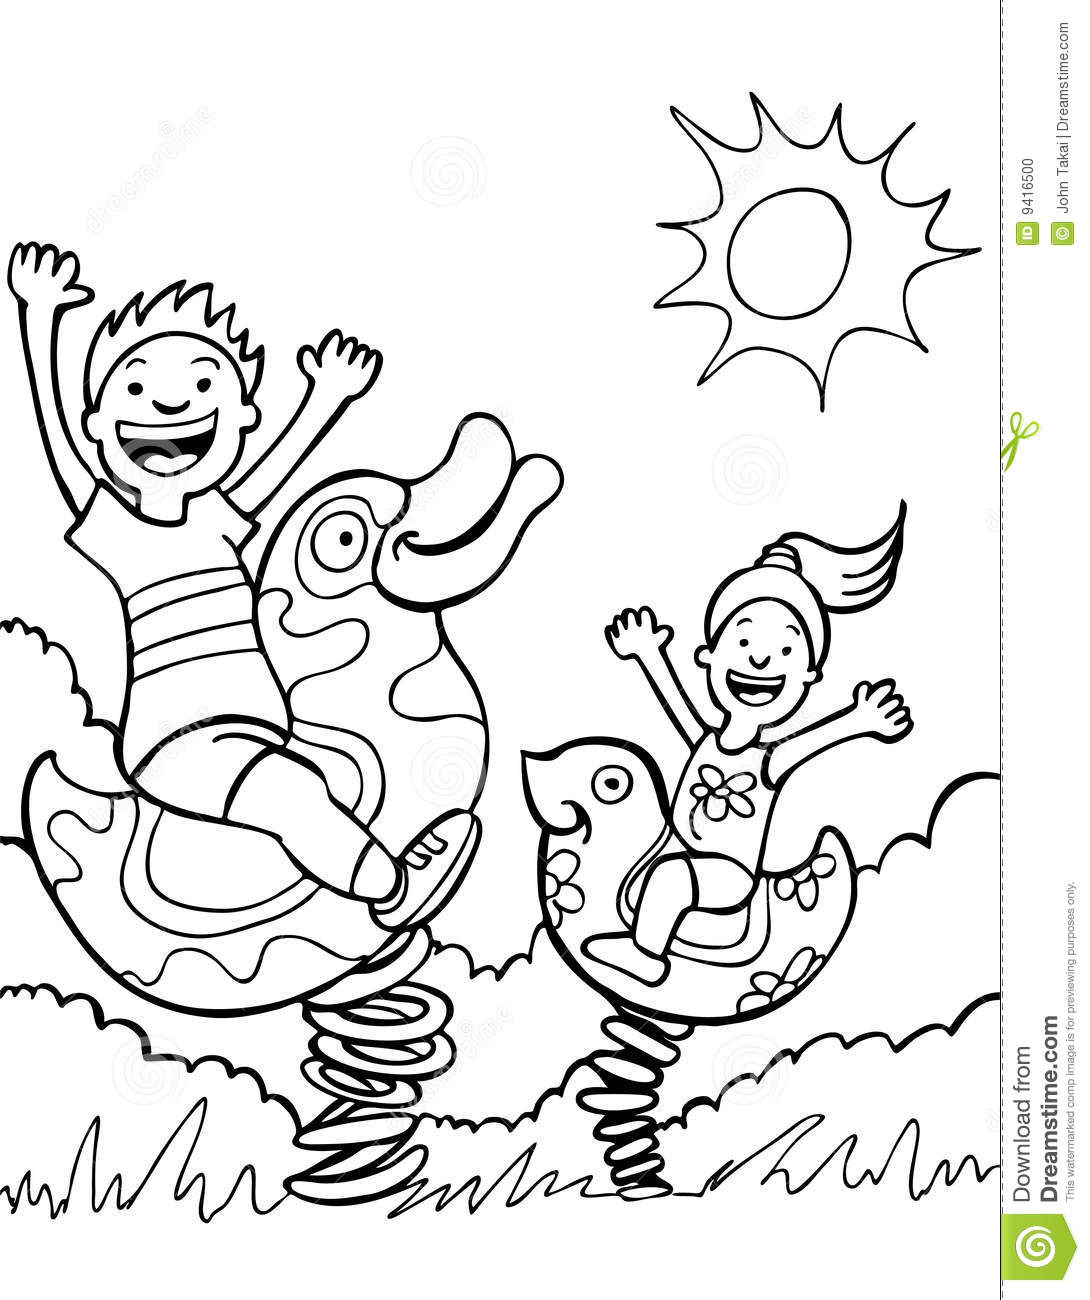 Kids Playing On Park Rides - Black And White Stock Vector ...